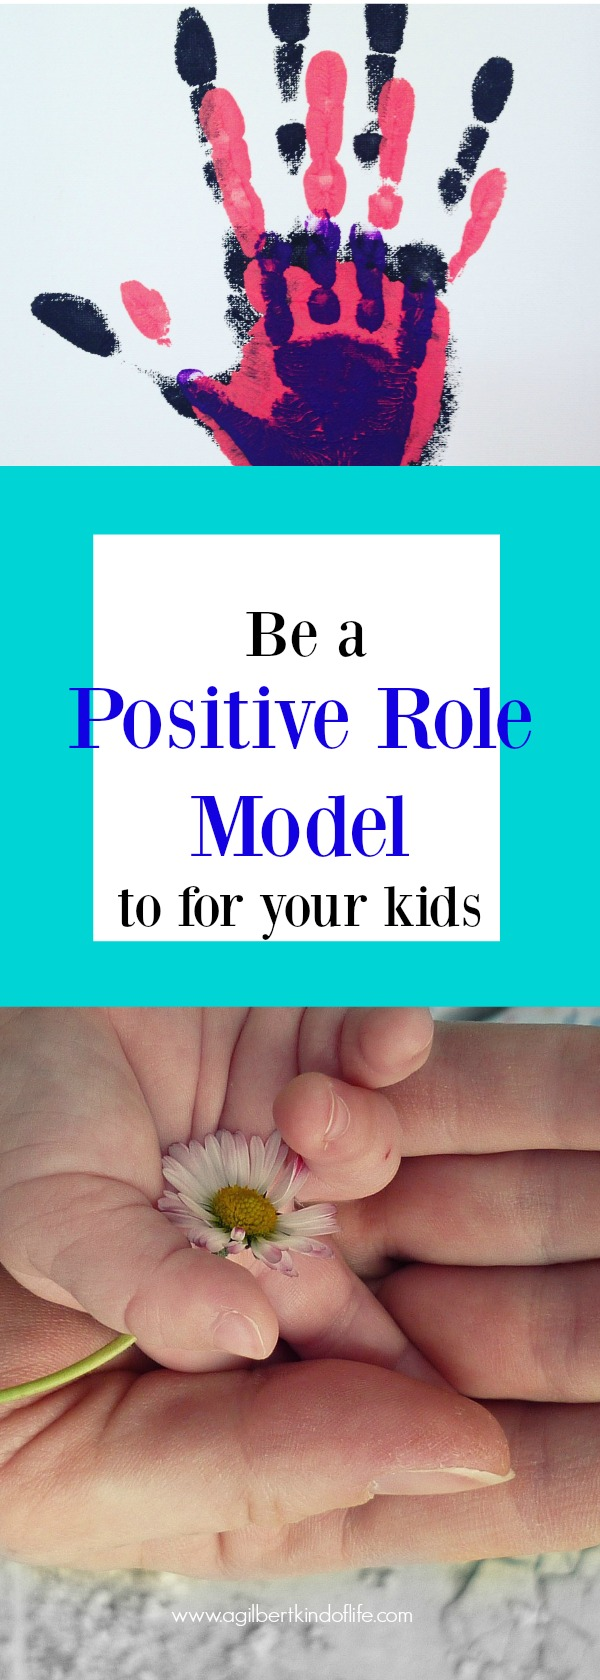 Becoming a positive role model for our children may be one of our most important jobs as parents